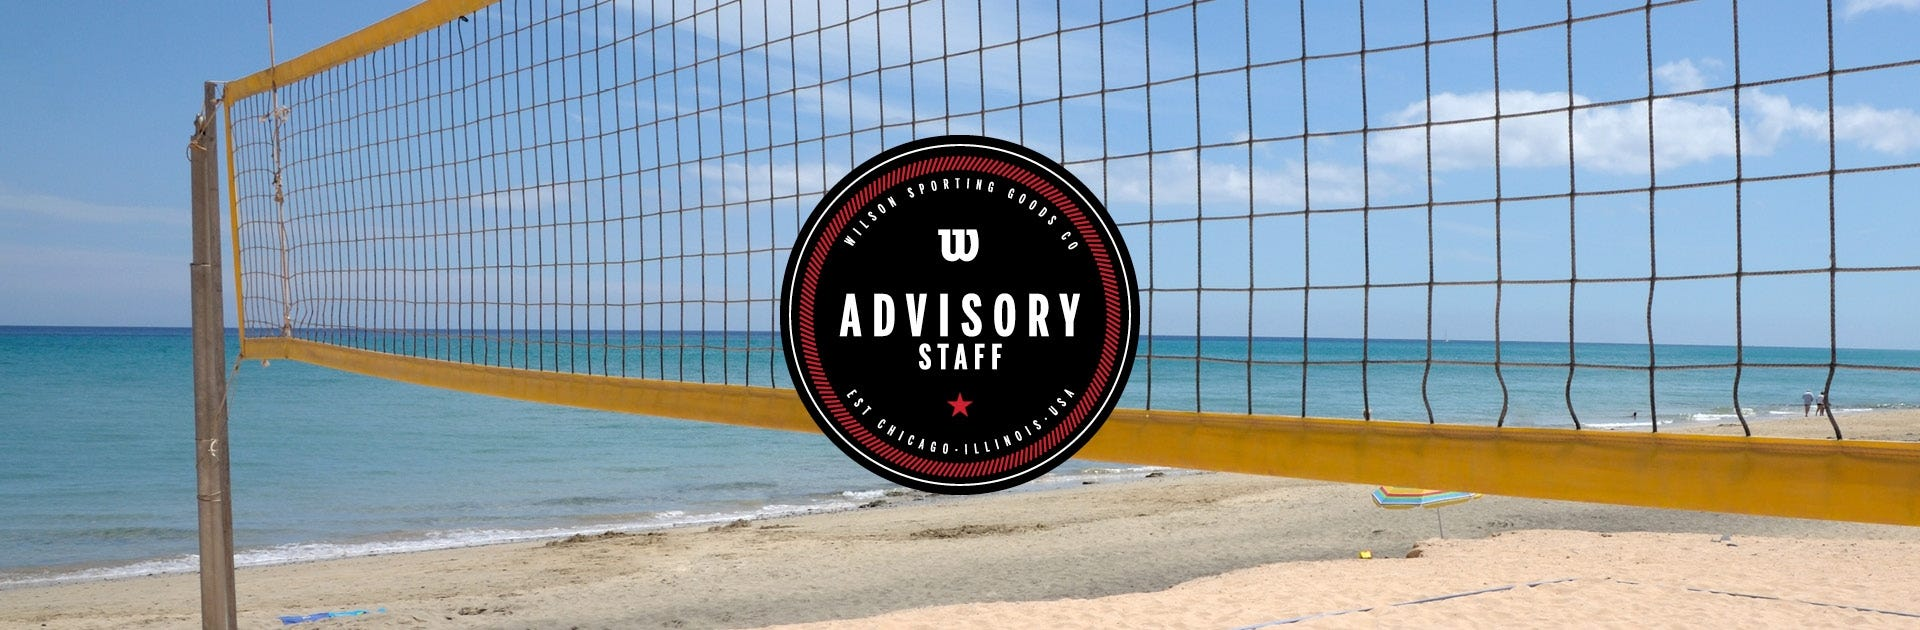 Wilson Volleyball Advisory Staff - NCAA Beach